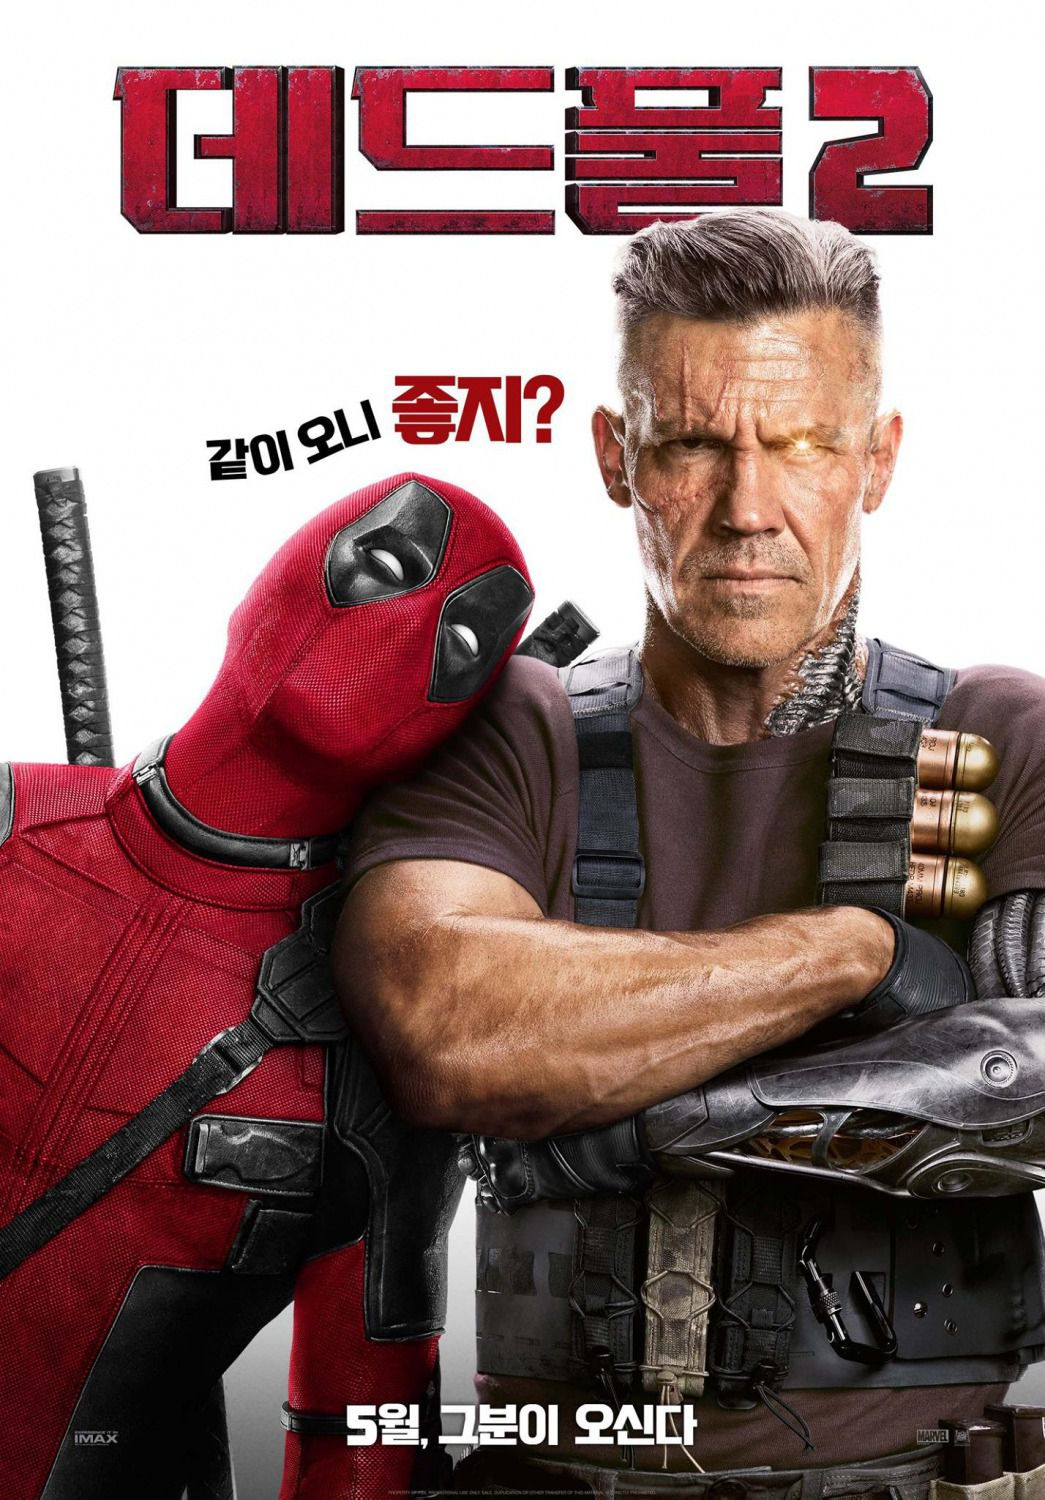 Ryan Reynolds, Josh Brolin